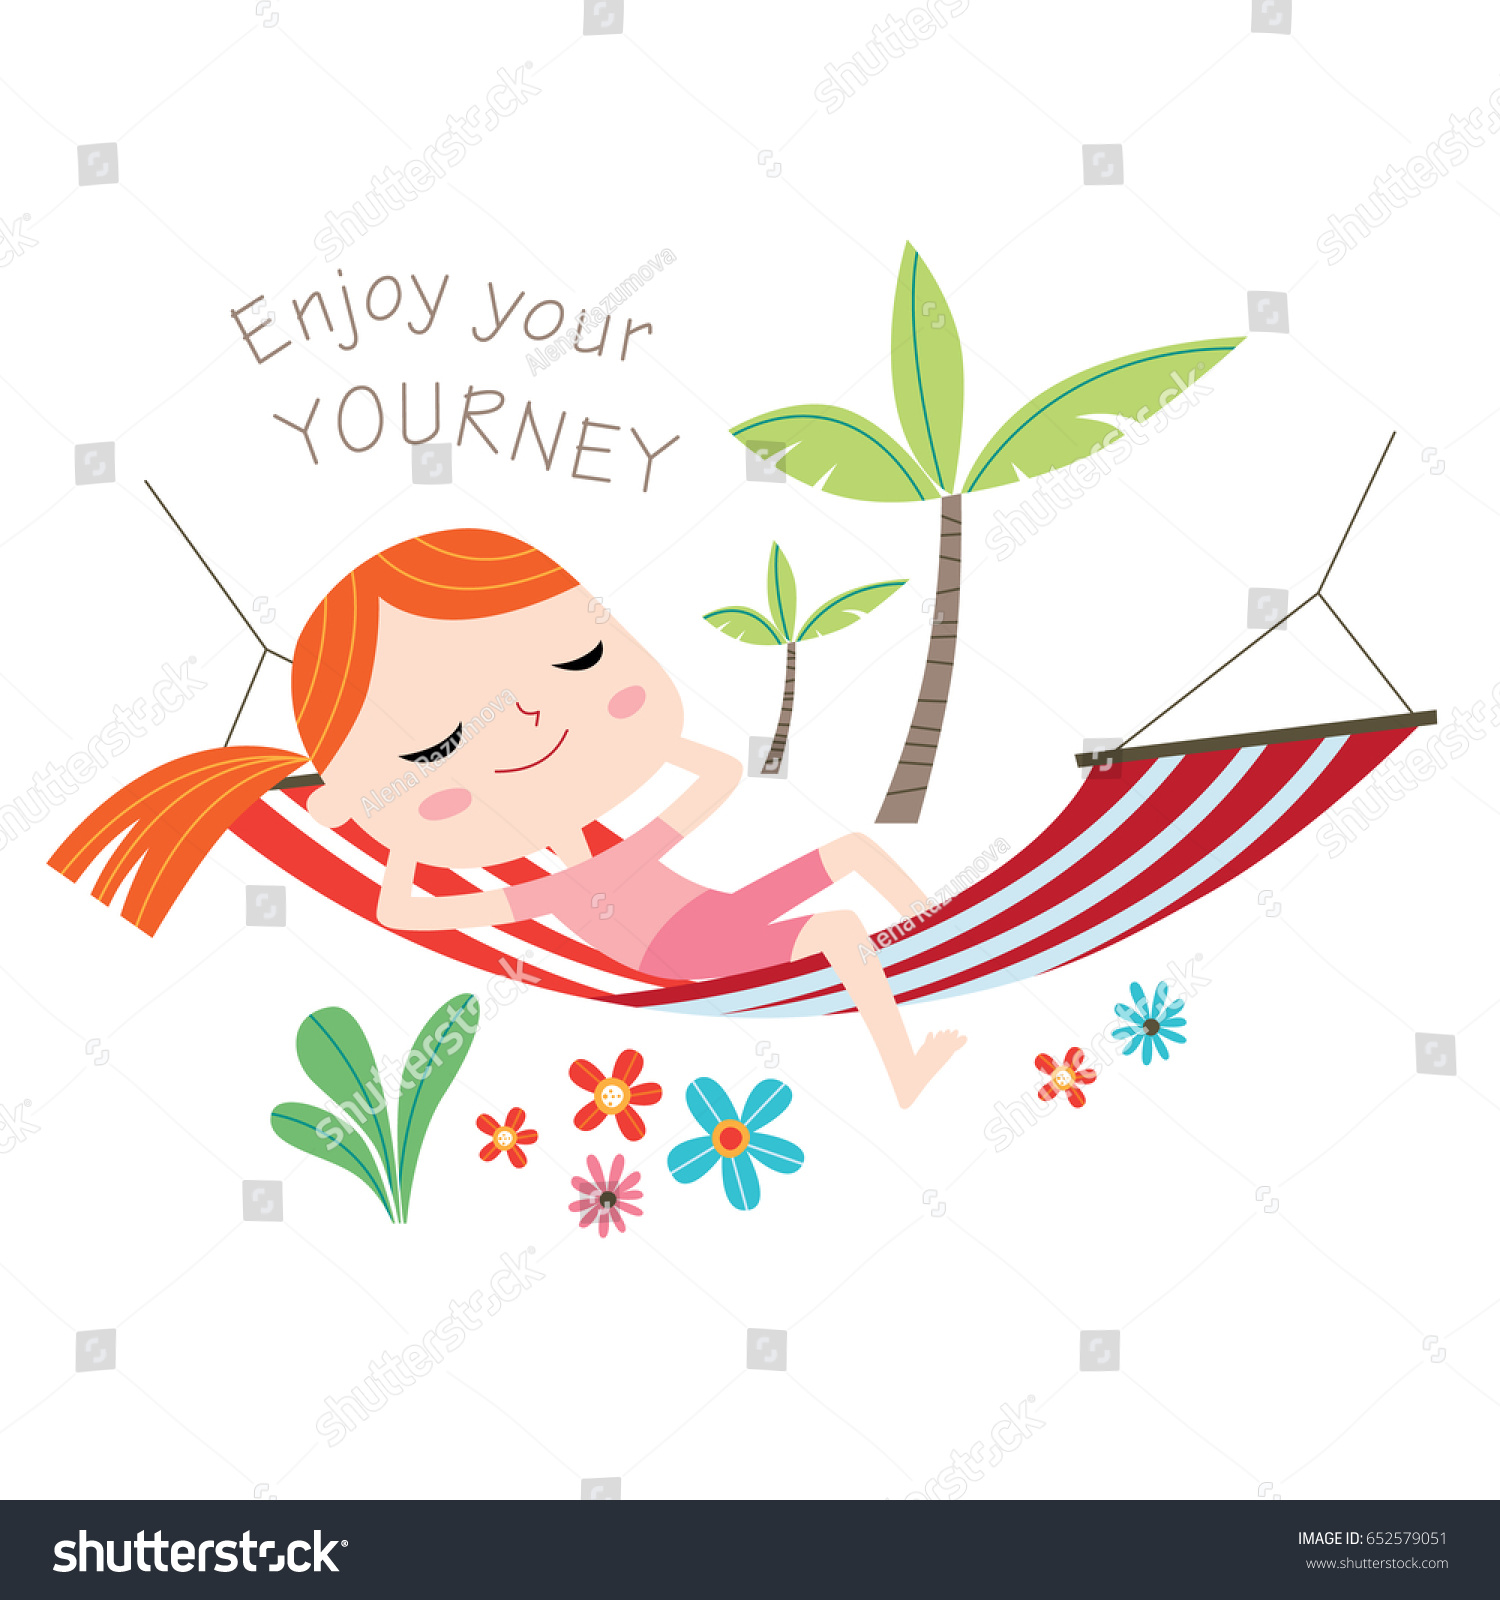 Enjoy Your Journey Greeting Card Vector Stock Vector Royalty Free